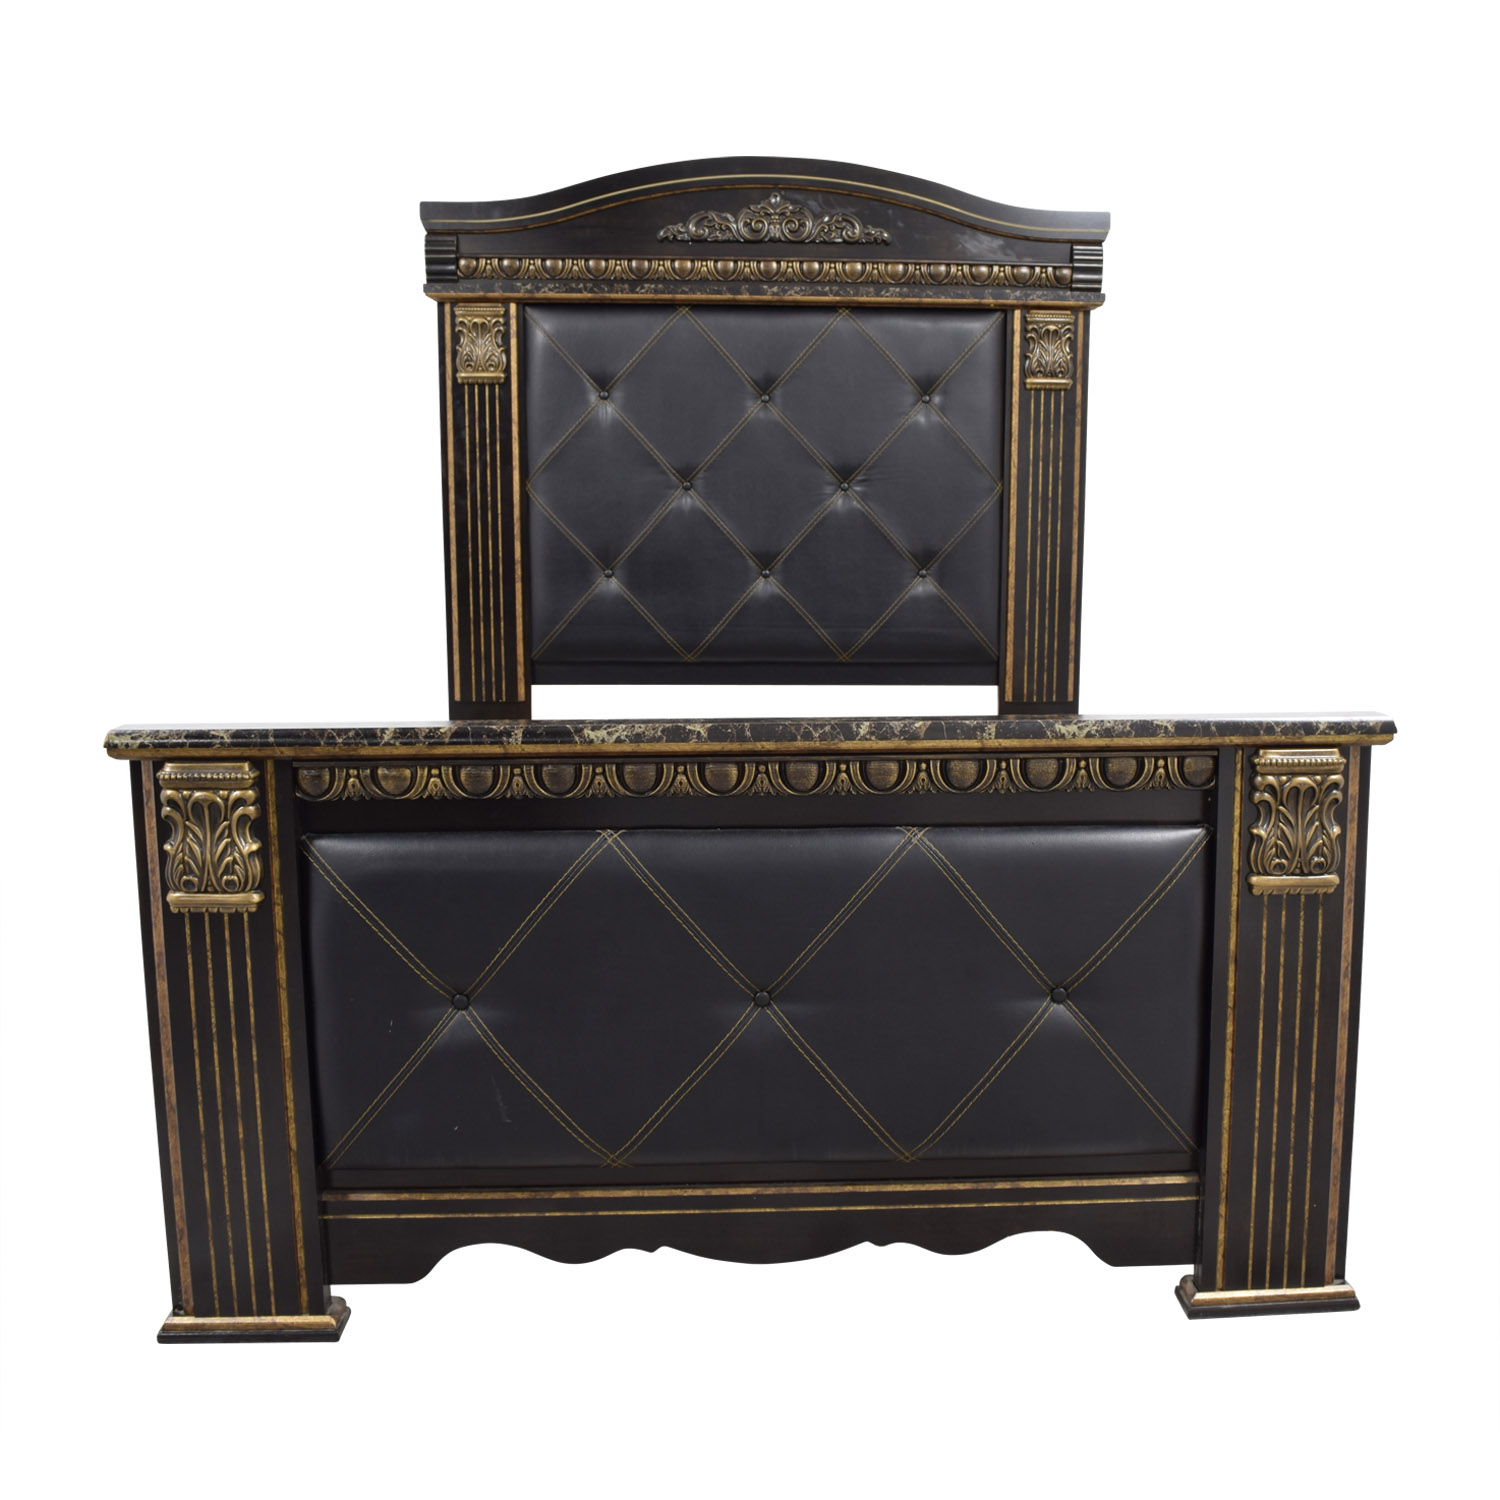 Signature Signature Cal King Black Leather with Gold Trim Bed Frame nyc